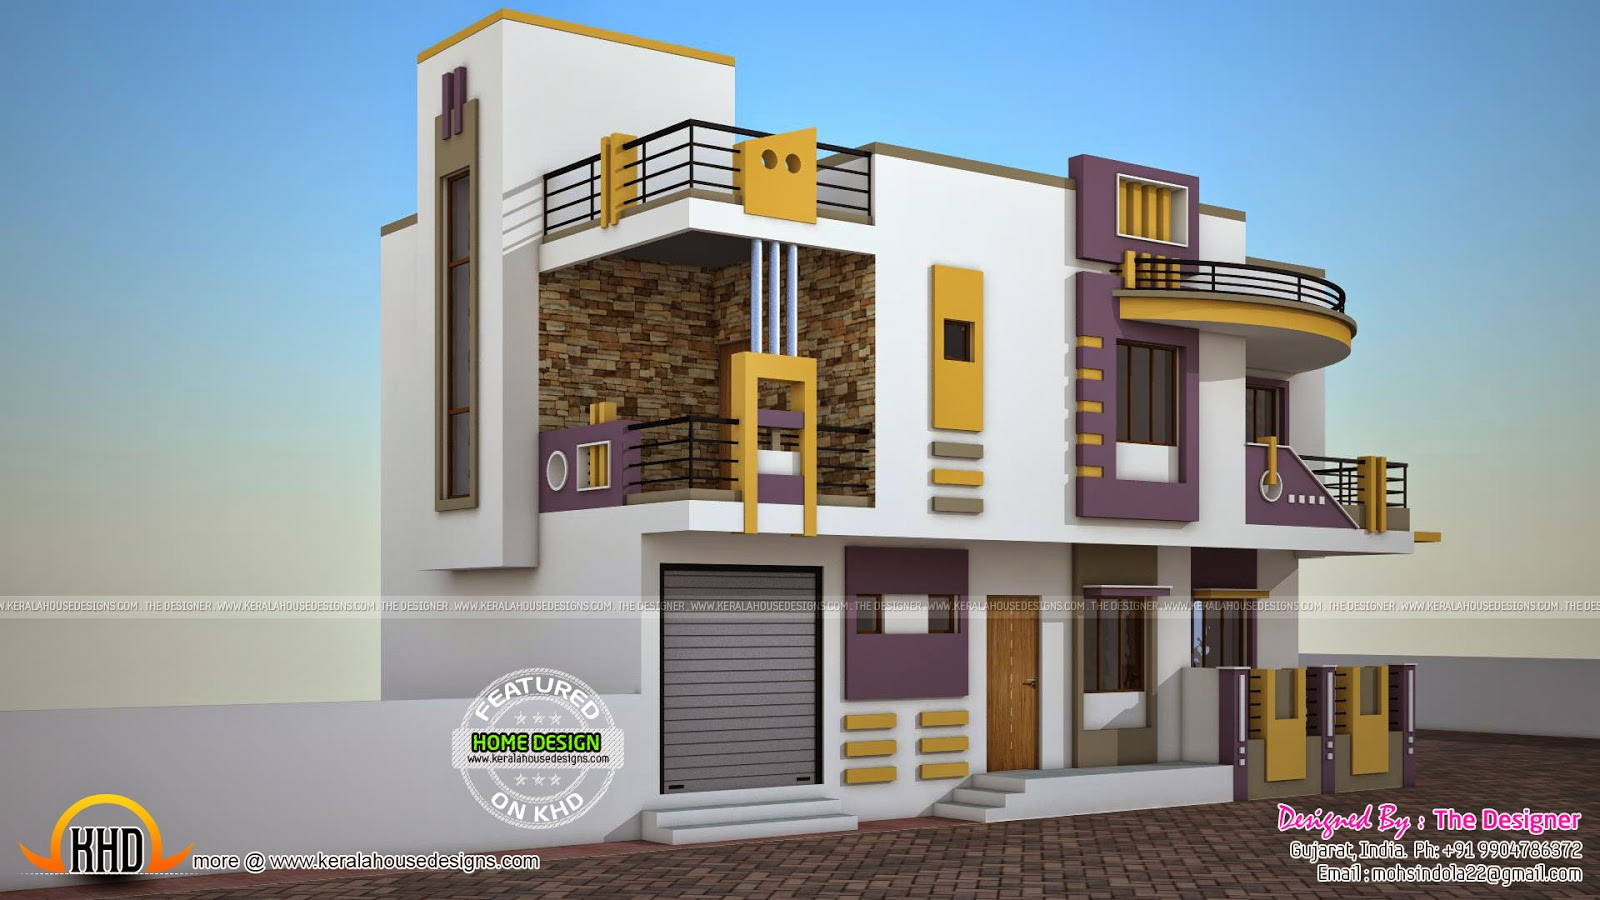 Parapet designs on bungalows in nigeria